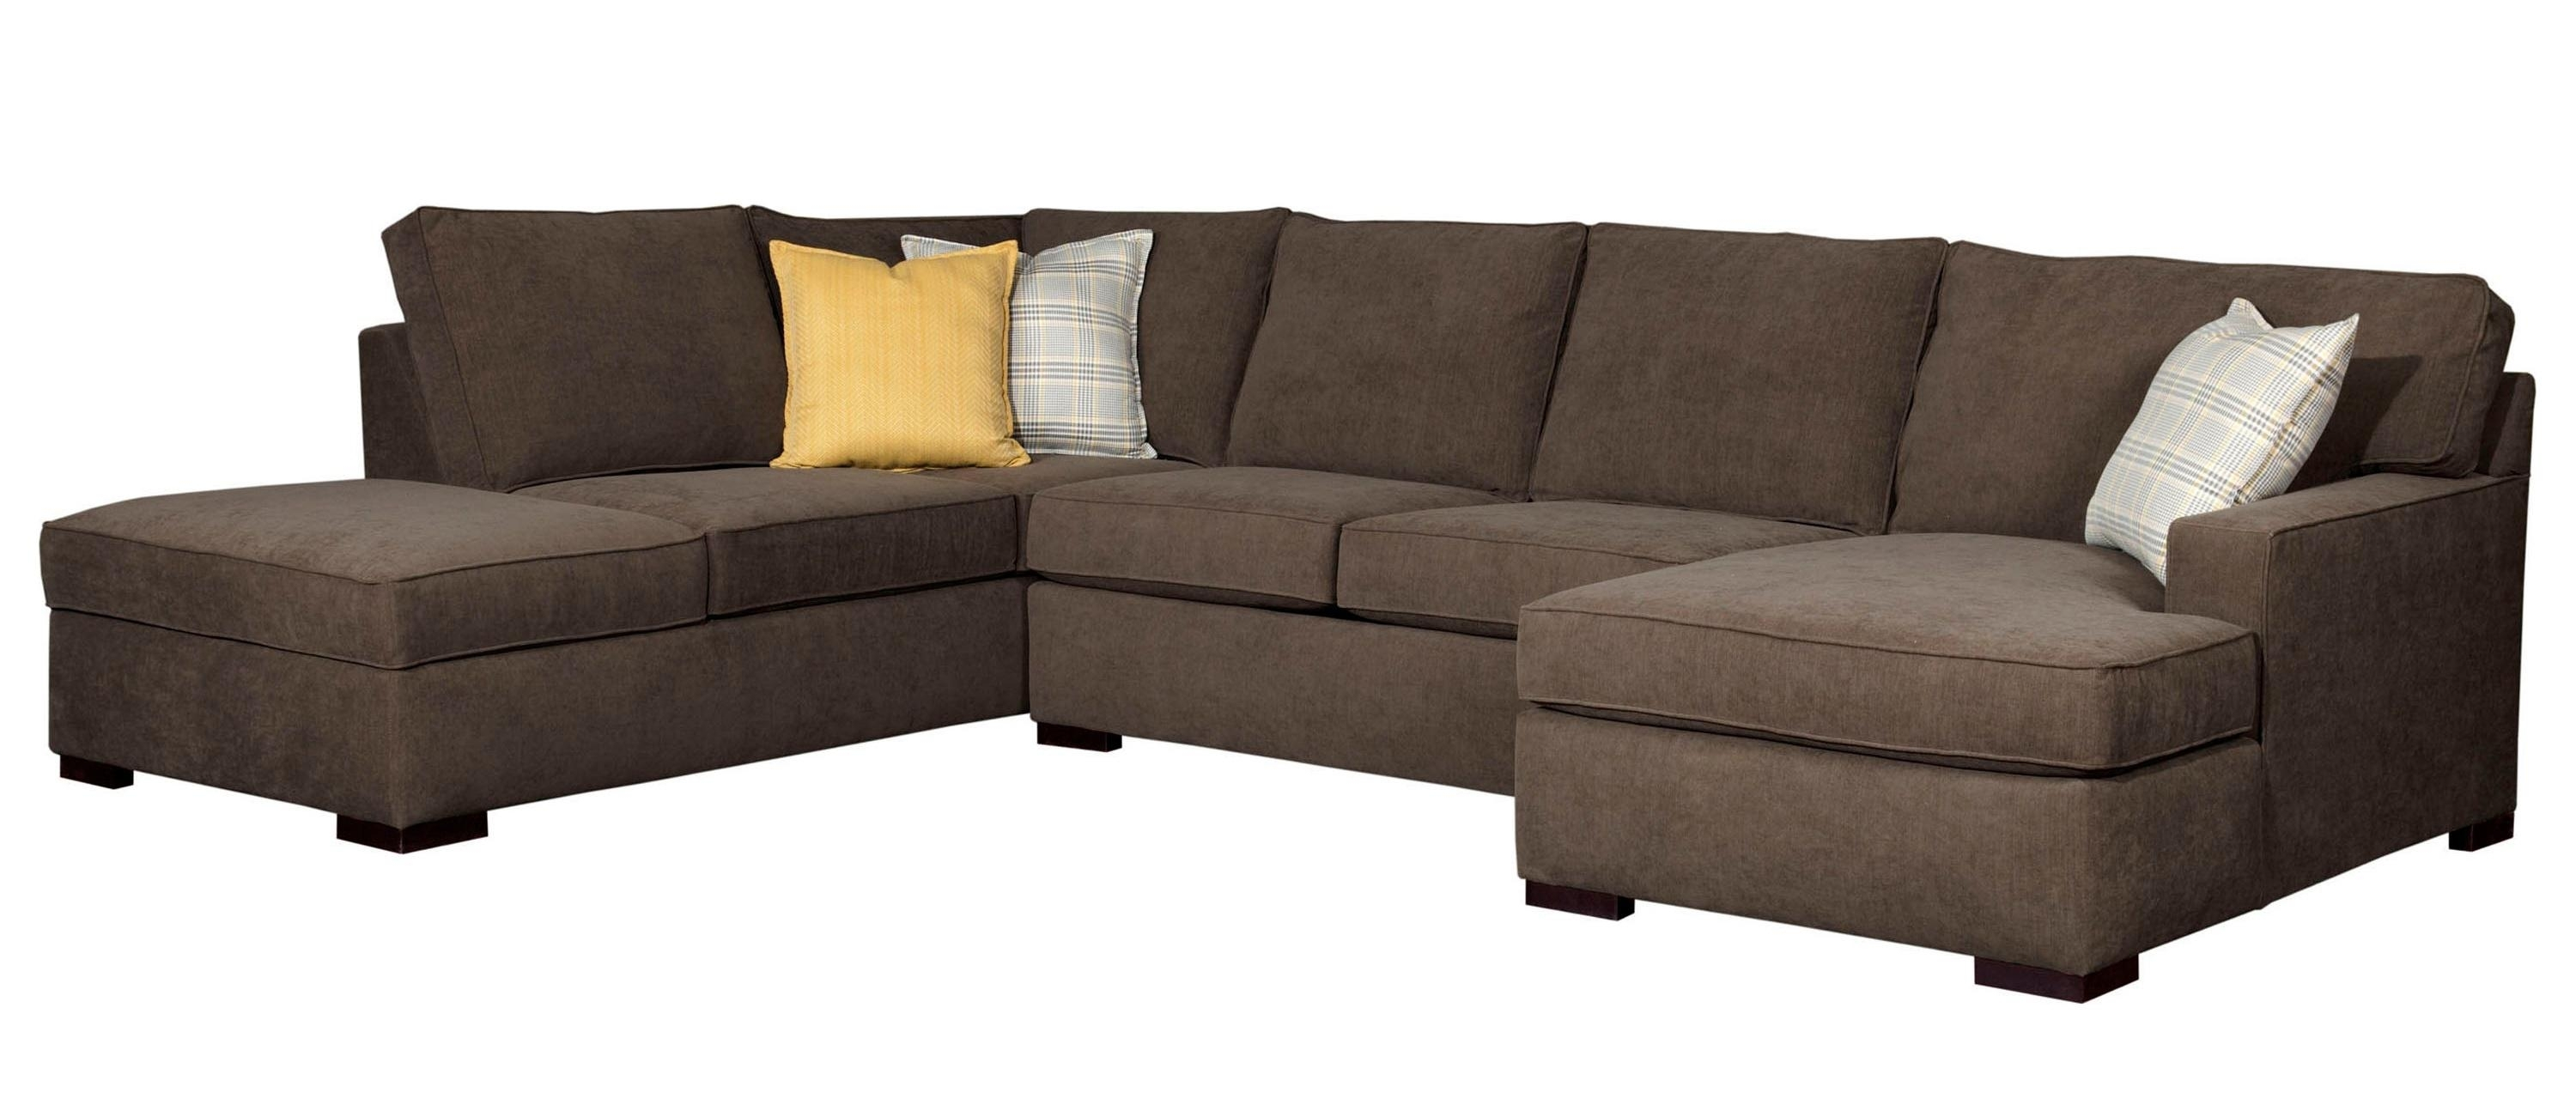 Broyhill Furniture Raphael Contemporary Sectional Sofa With Raf in Norfolk Grey 6 Piece Sectionals With Raf Chaise (Image 5 of 30)